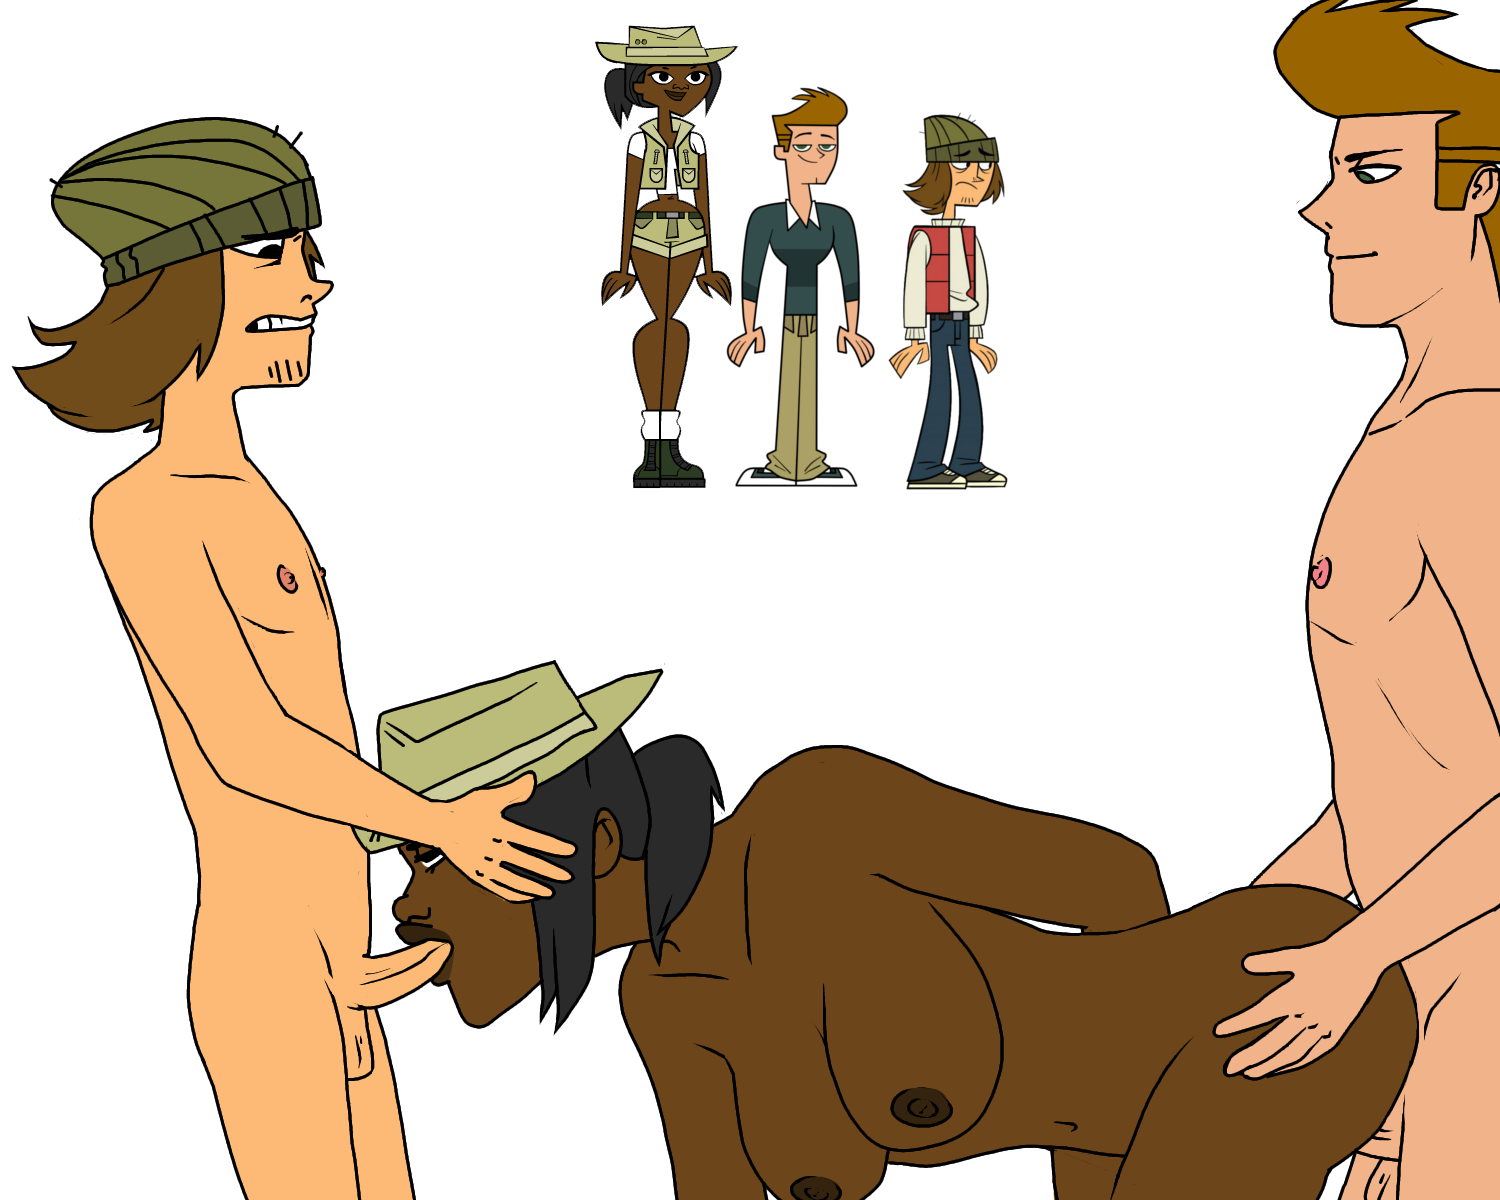 Not Total drama porn puasy licking thought differently